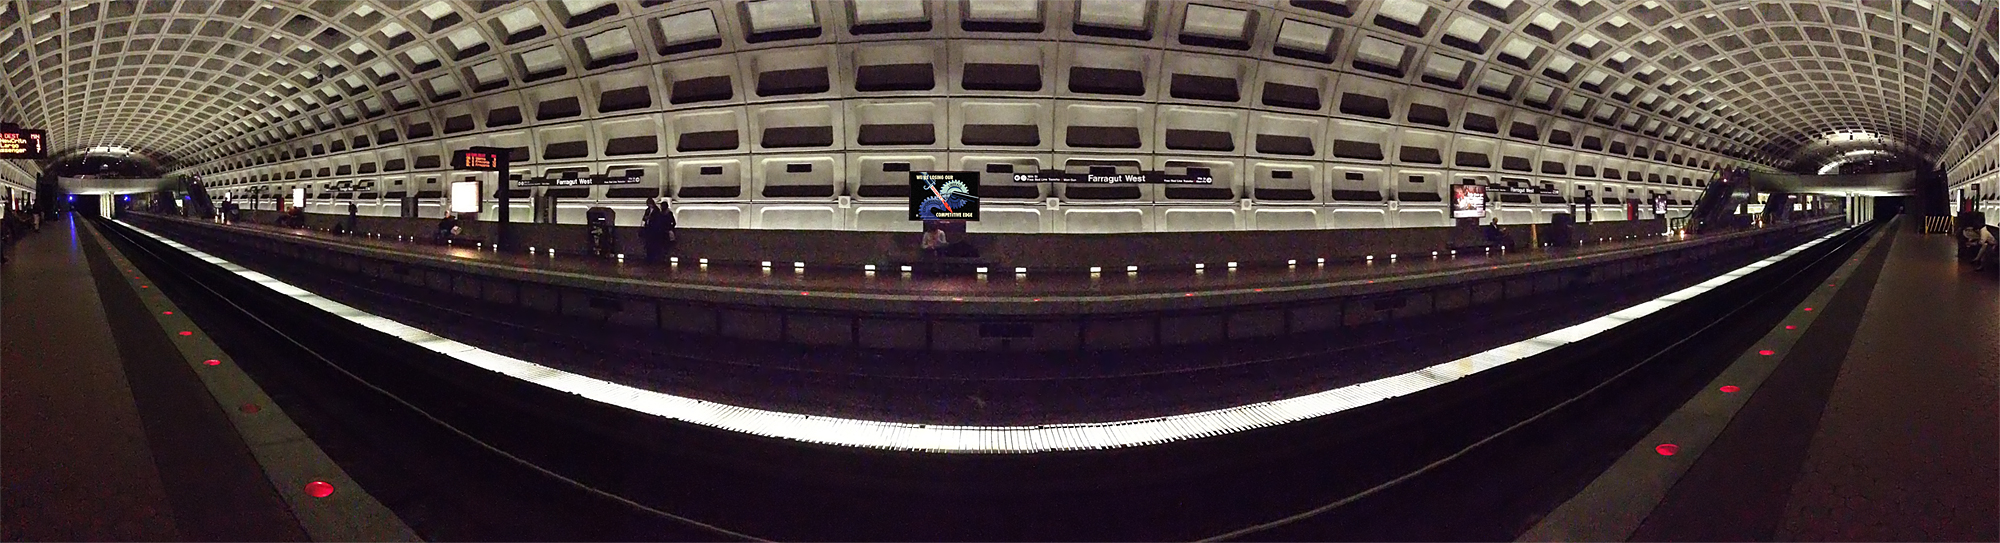 Chamomile Tea Party poster panorama in Farragut West Metro station